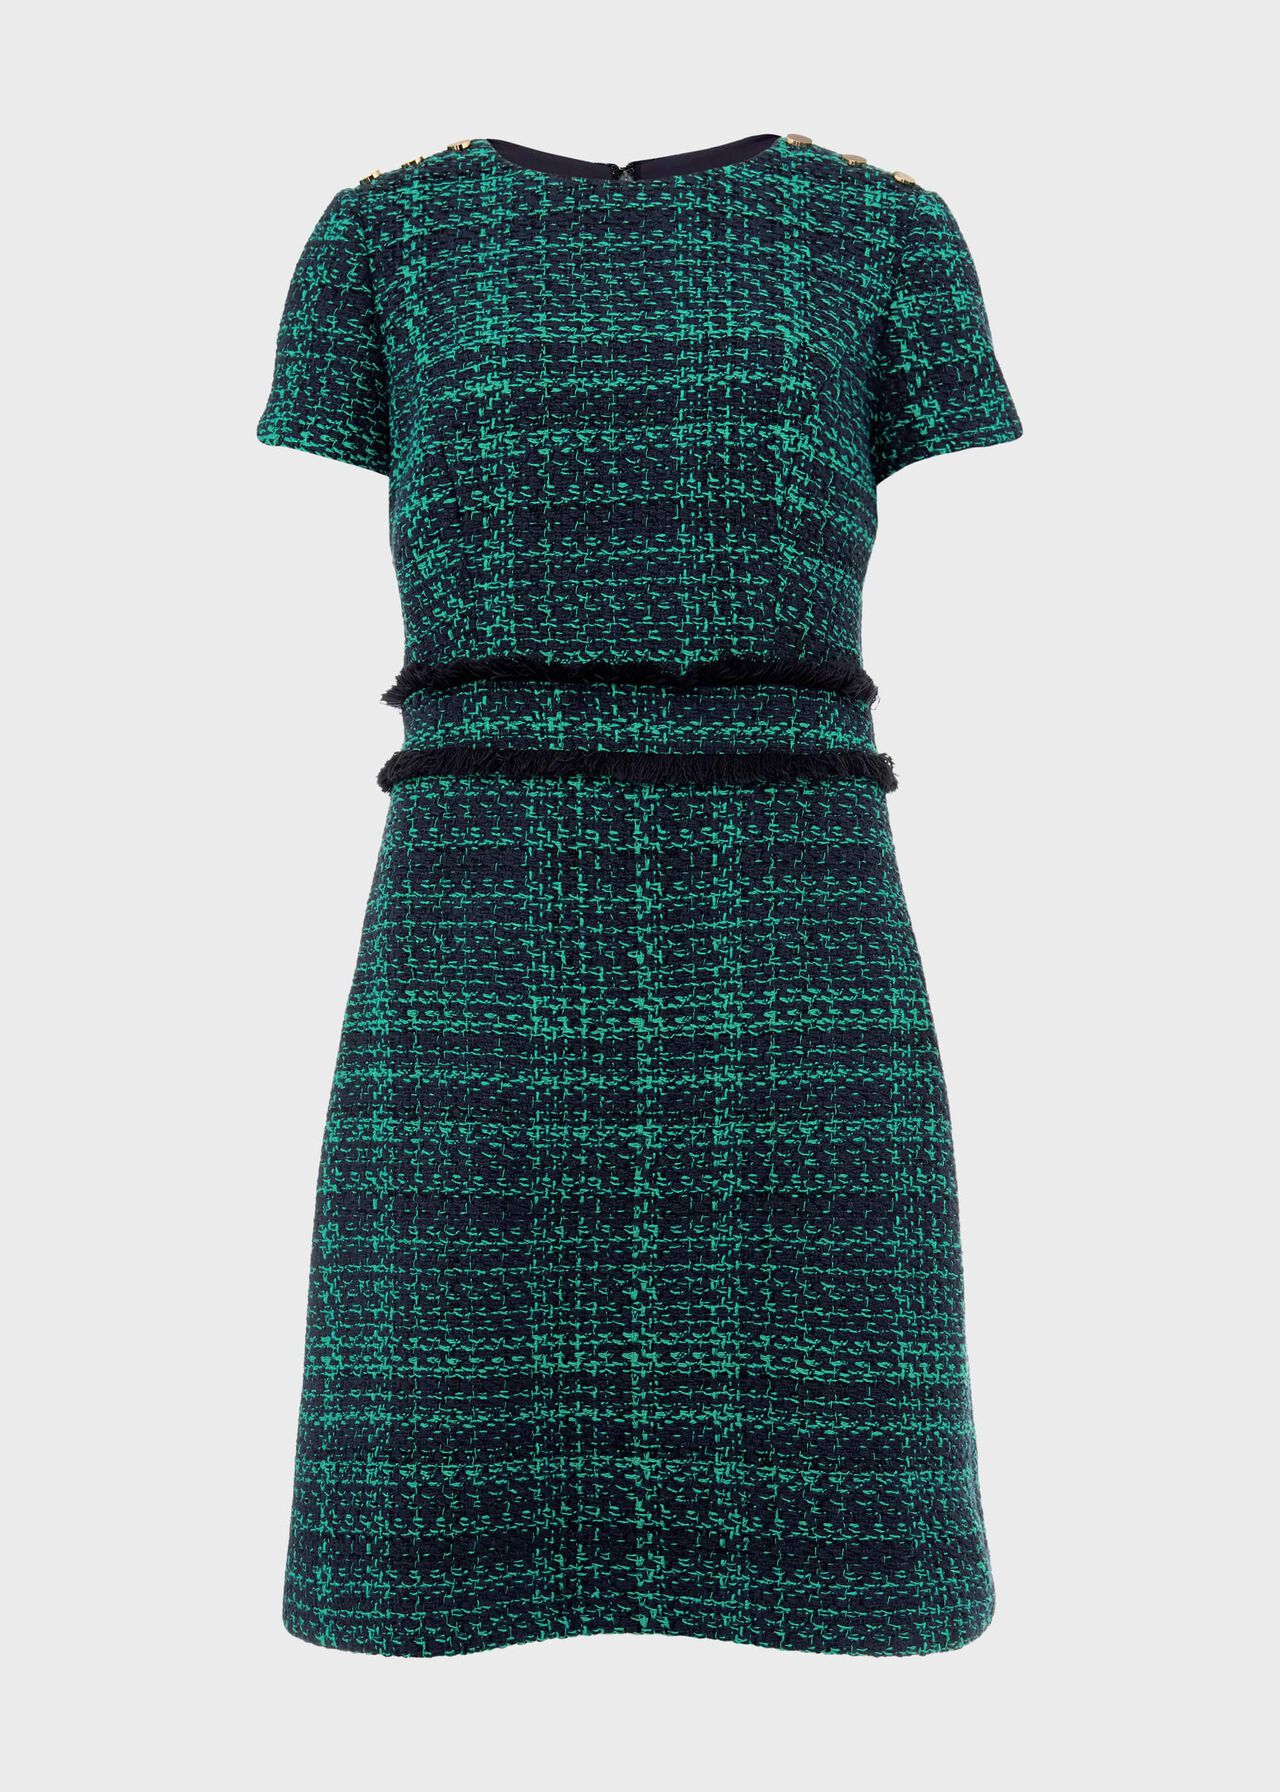 Rosa Tweed A Line Dress Navy Apple Grn